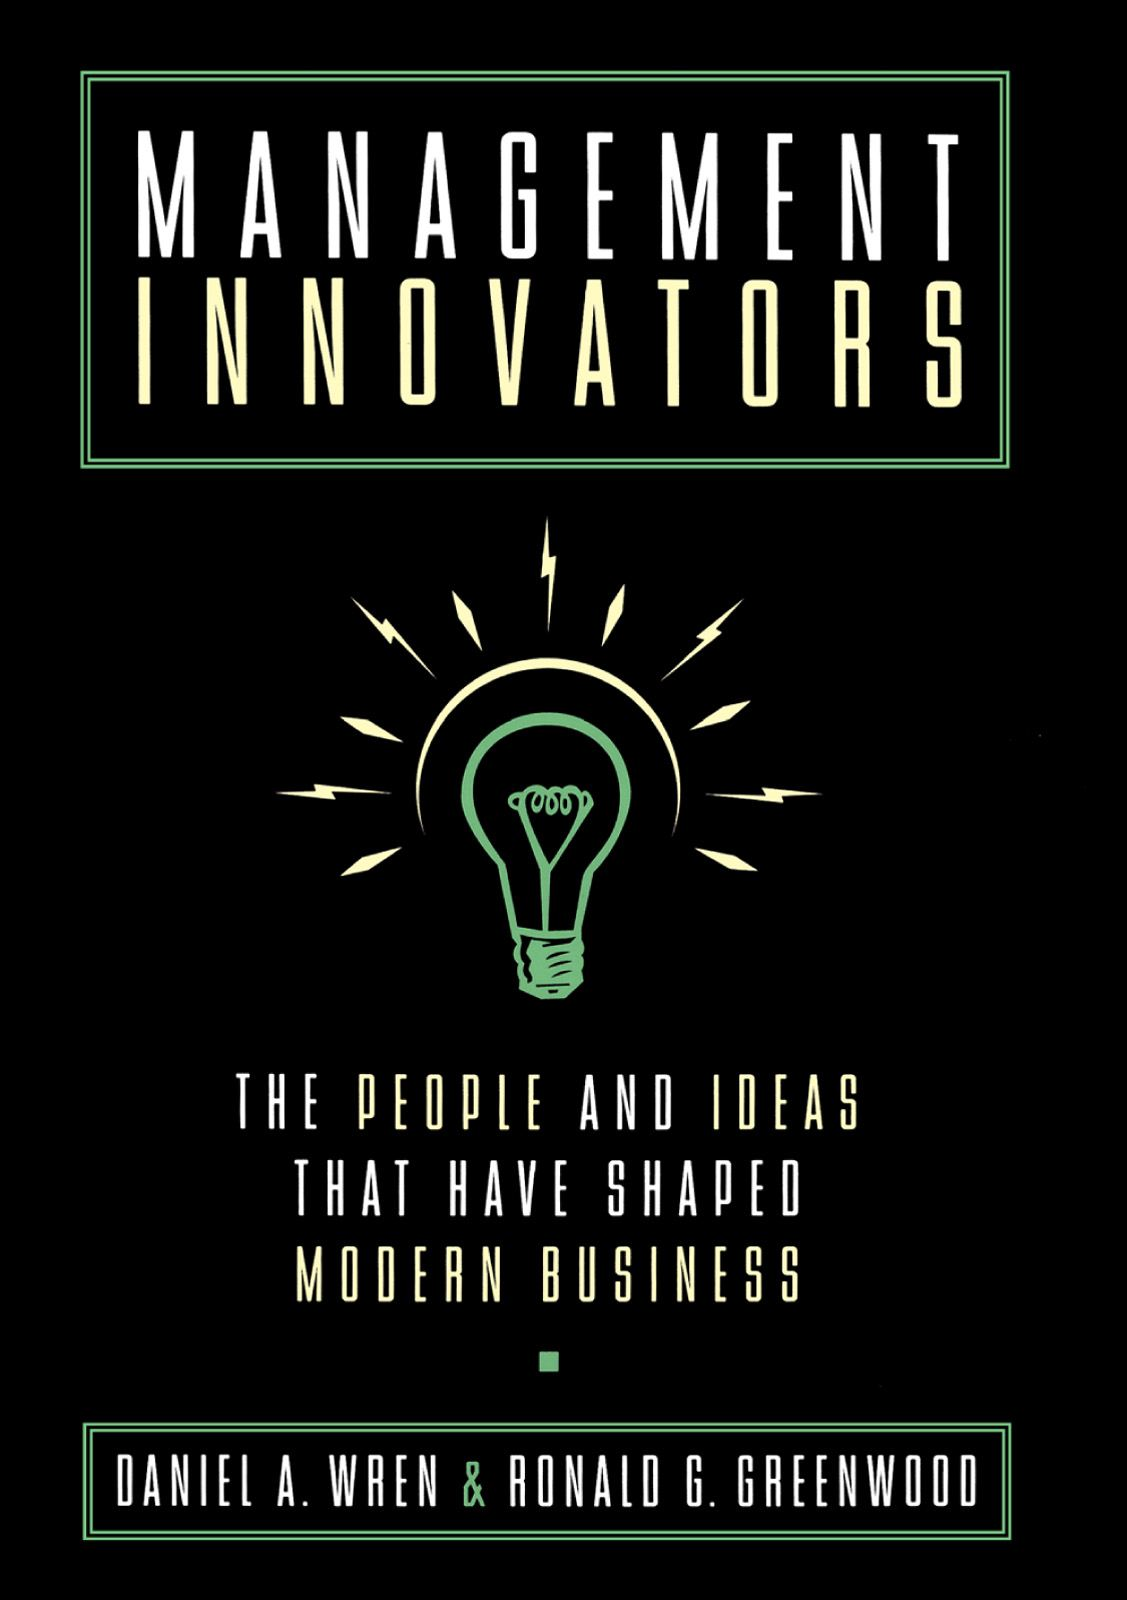 Management Innovators : The People and Ideas that Have Shaped Modern Business